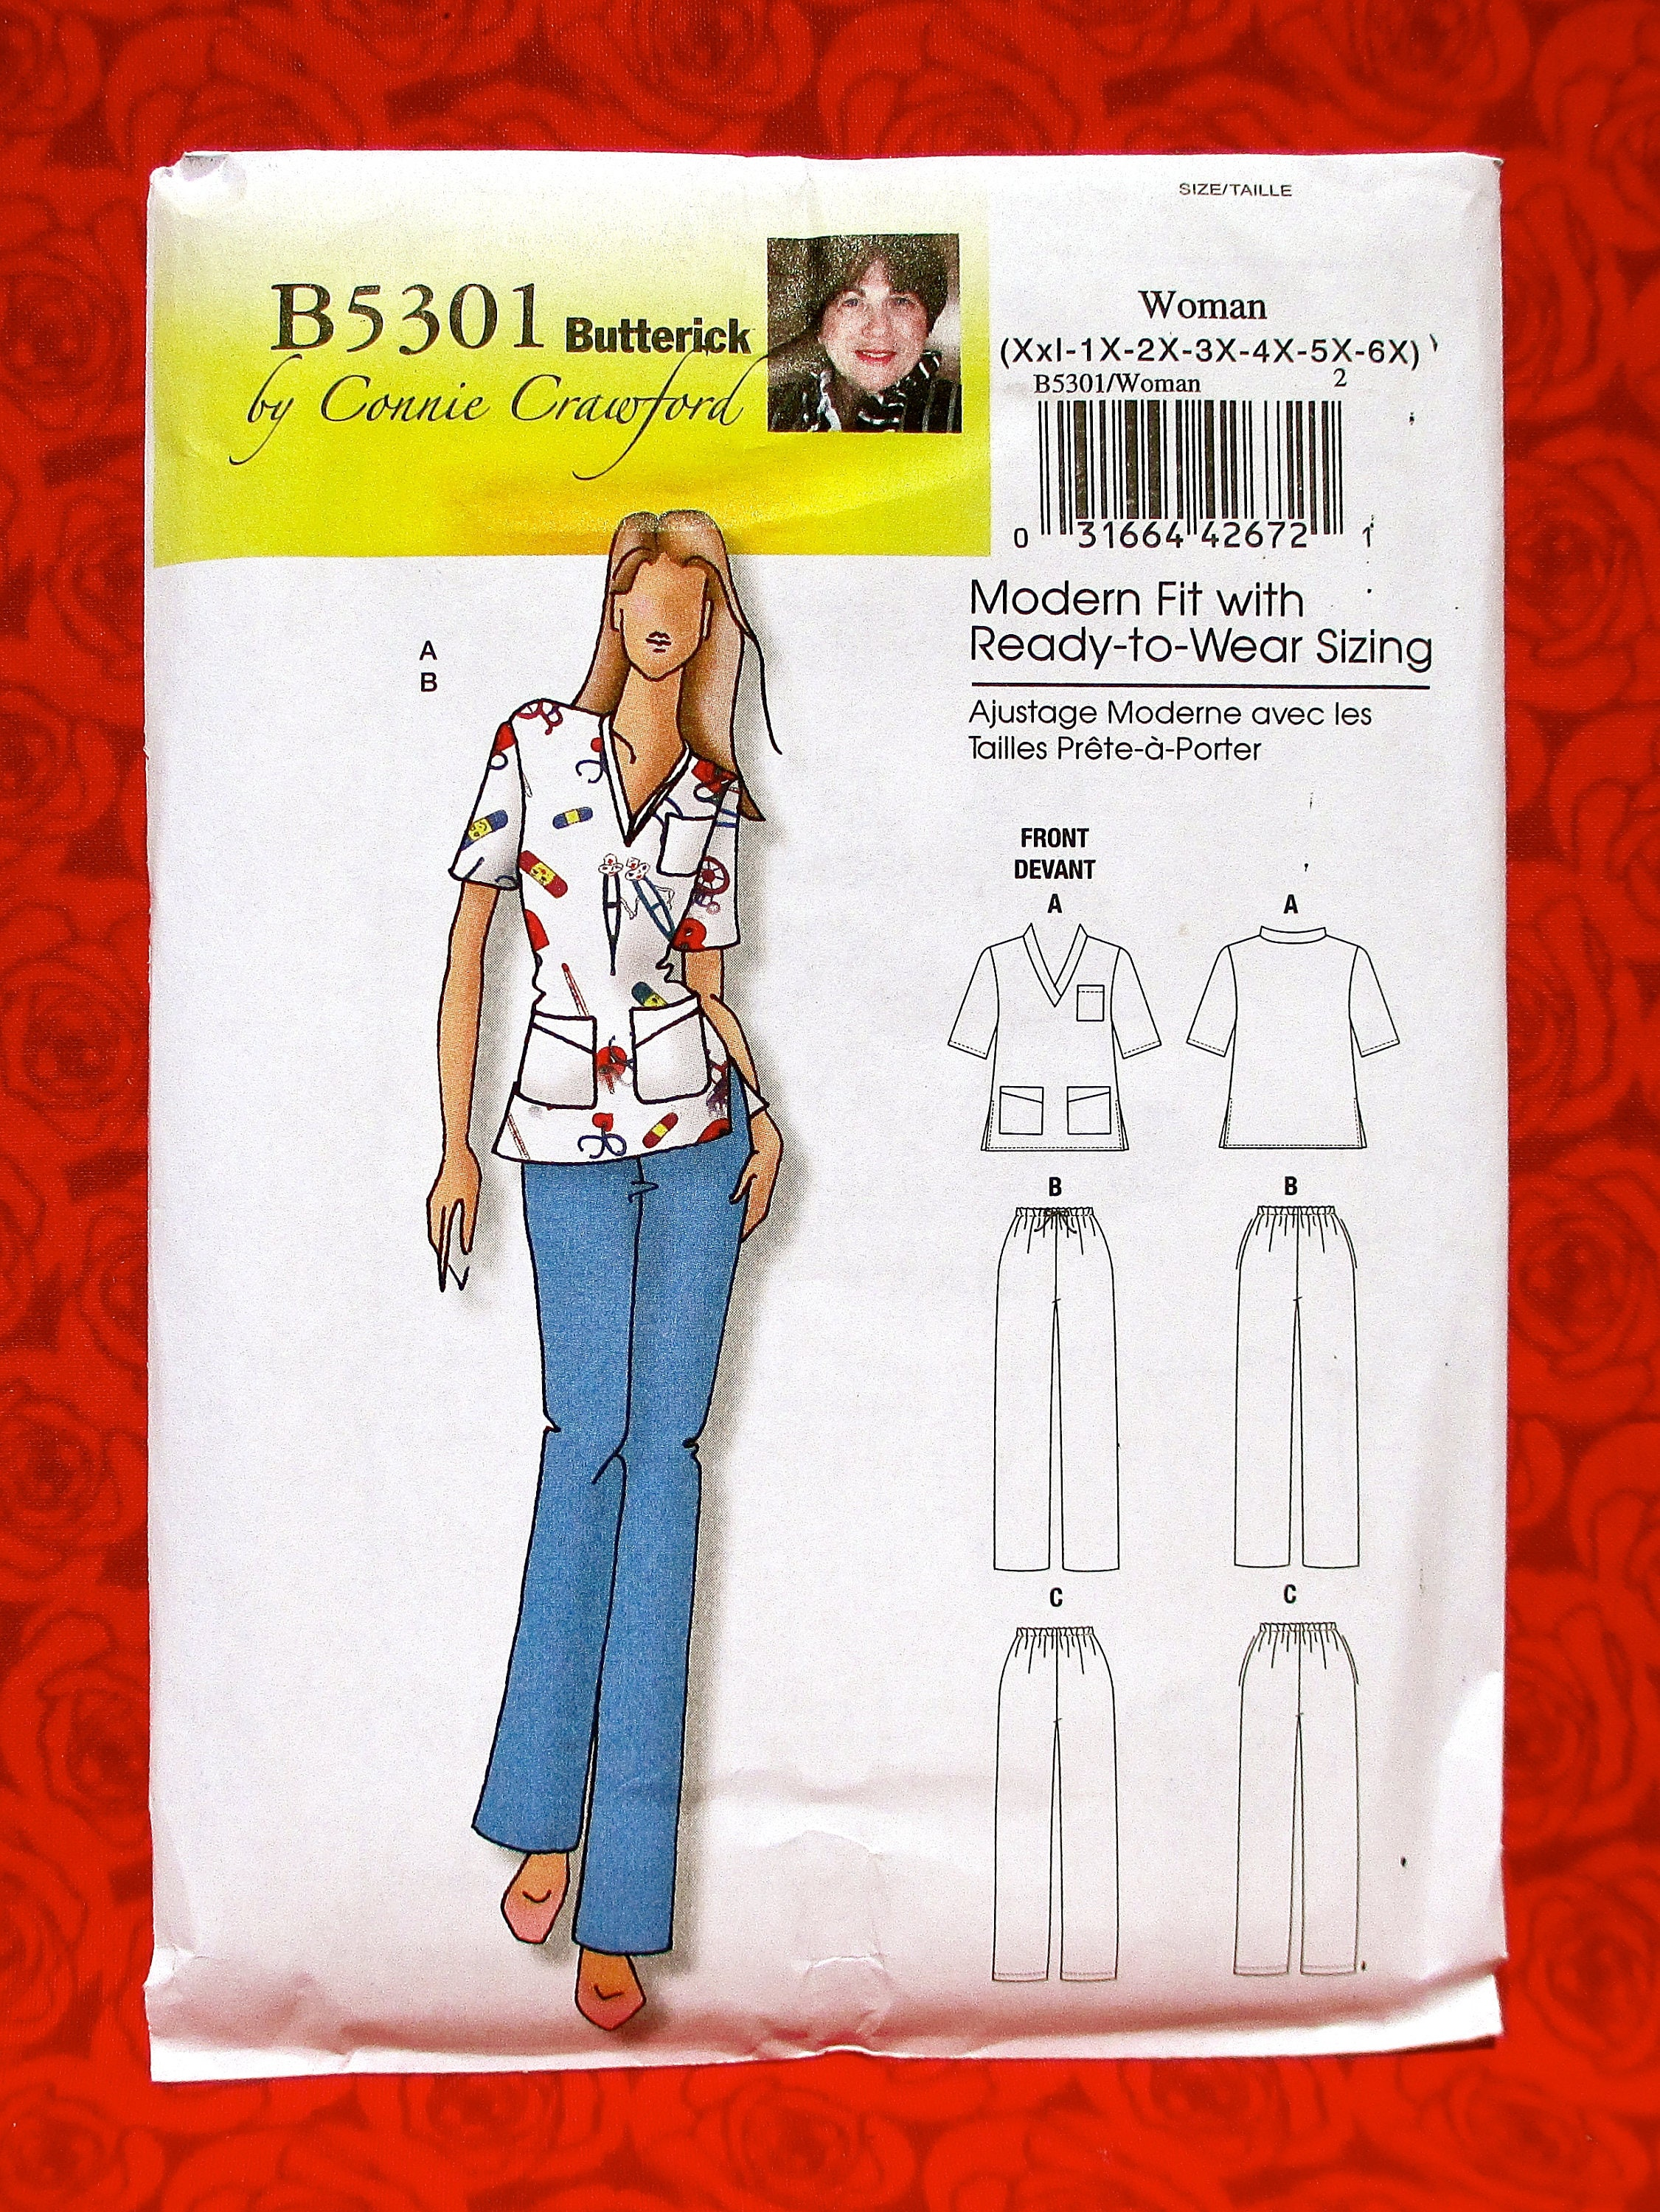 butterick sewing pattern b5301 scrubs top pants women's